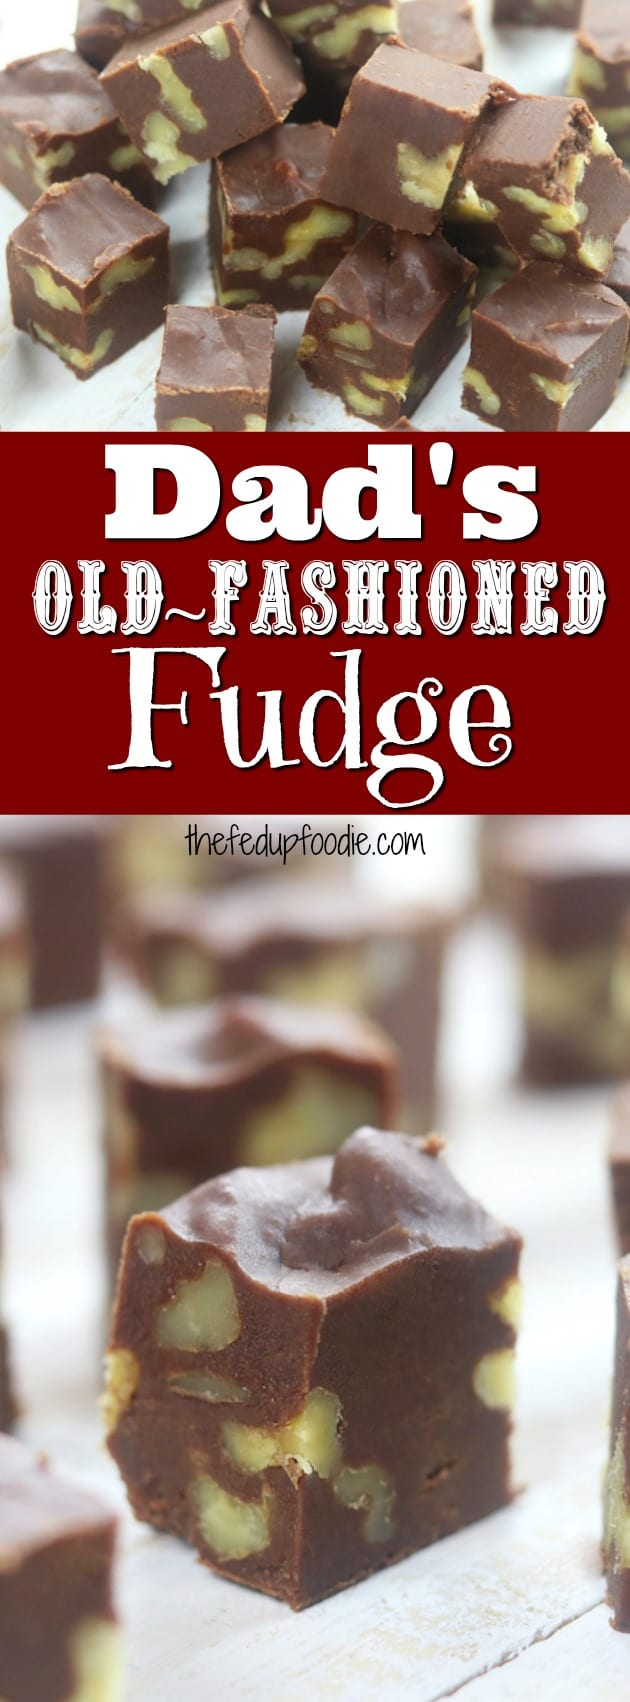 Dad's Old Fashioned Fudge recipe has been in my family since about 1975 and is an absolute must-make every Christmas and Easter. With just 5 ingredients, it turns out rich, creamy and a complete crowd pleaser! We served this fudge at my Dad's funeral reception and the plate was wiped clean in minutes. #Christmas #candy https://www.thefedupfoodie.com